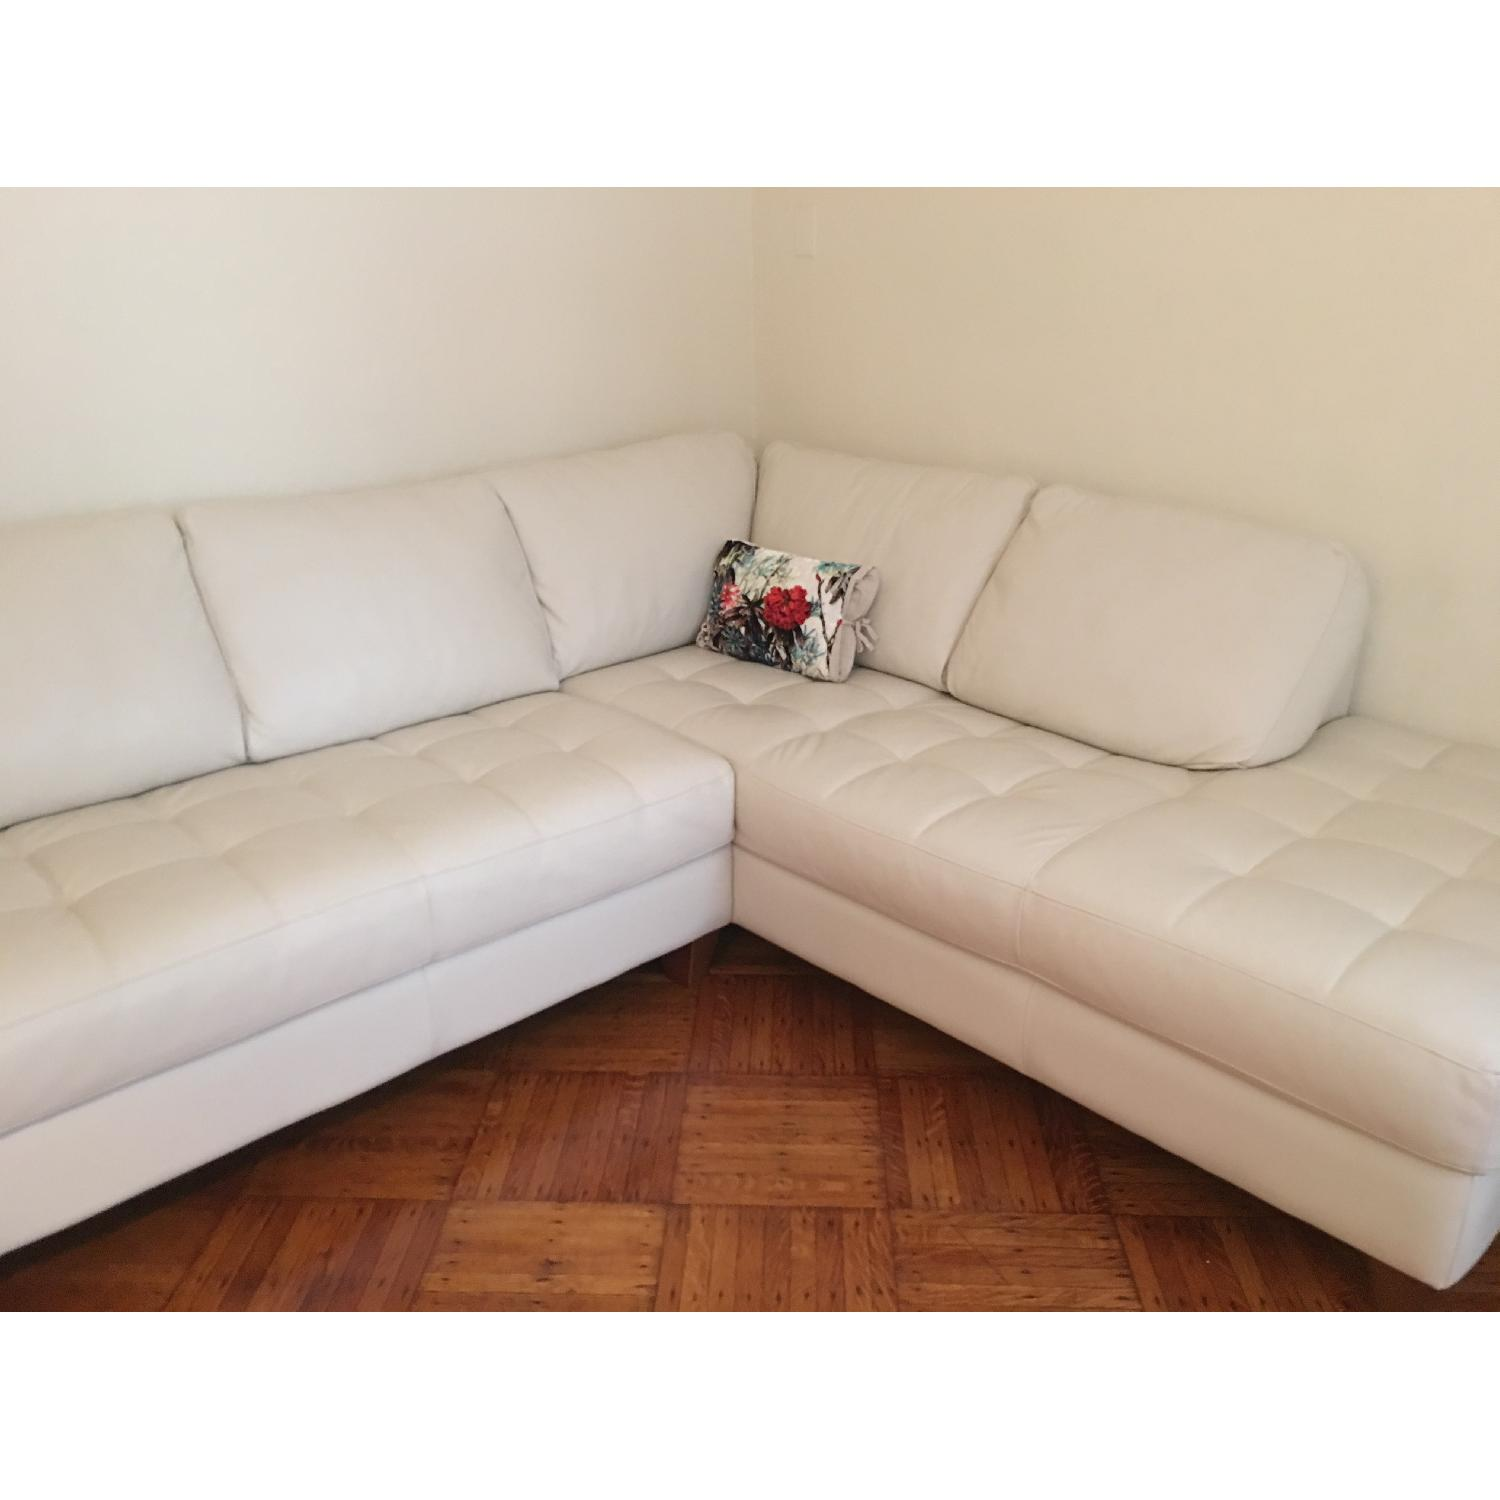 Macy's Italian Quilted Leather Sectional Sofa - image-6